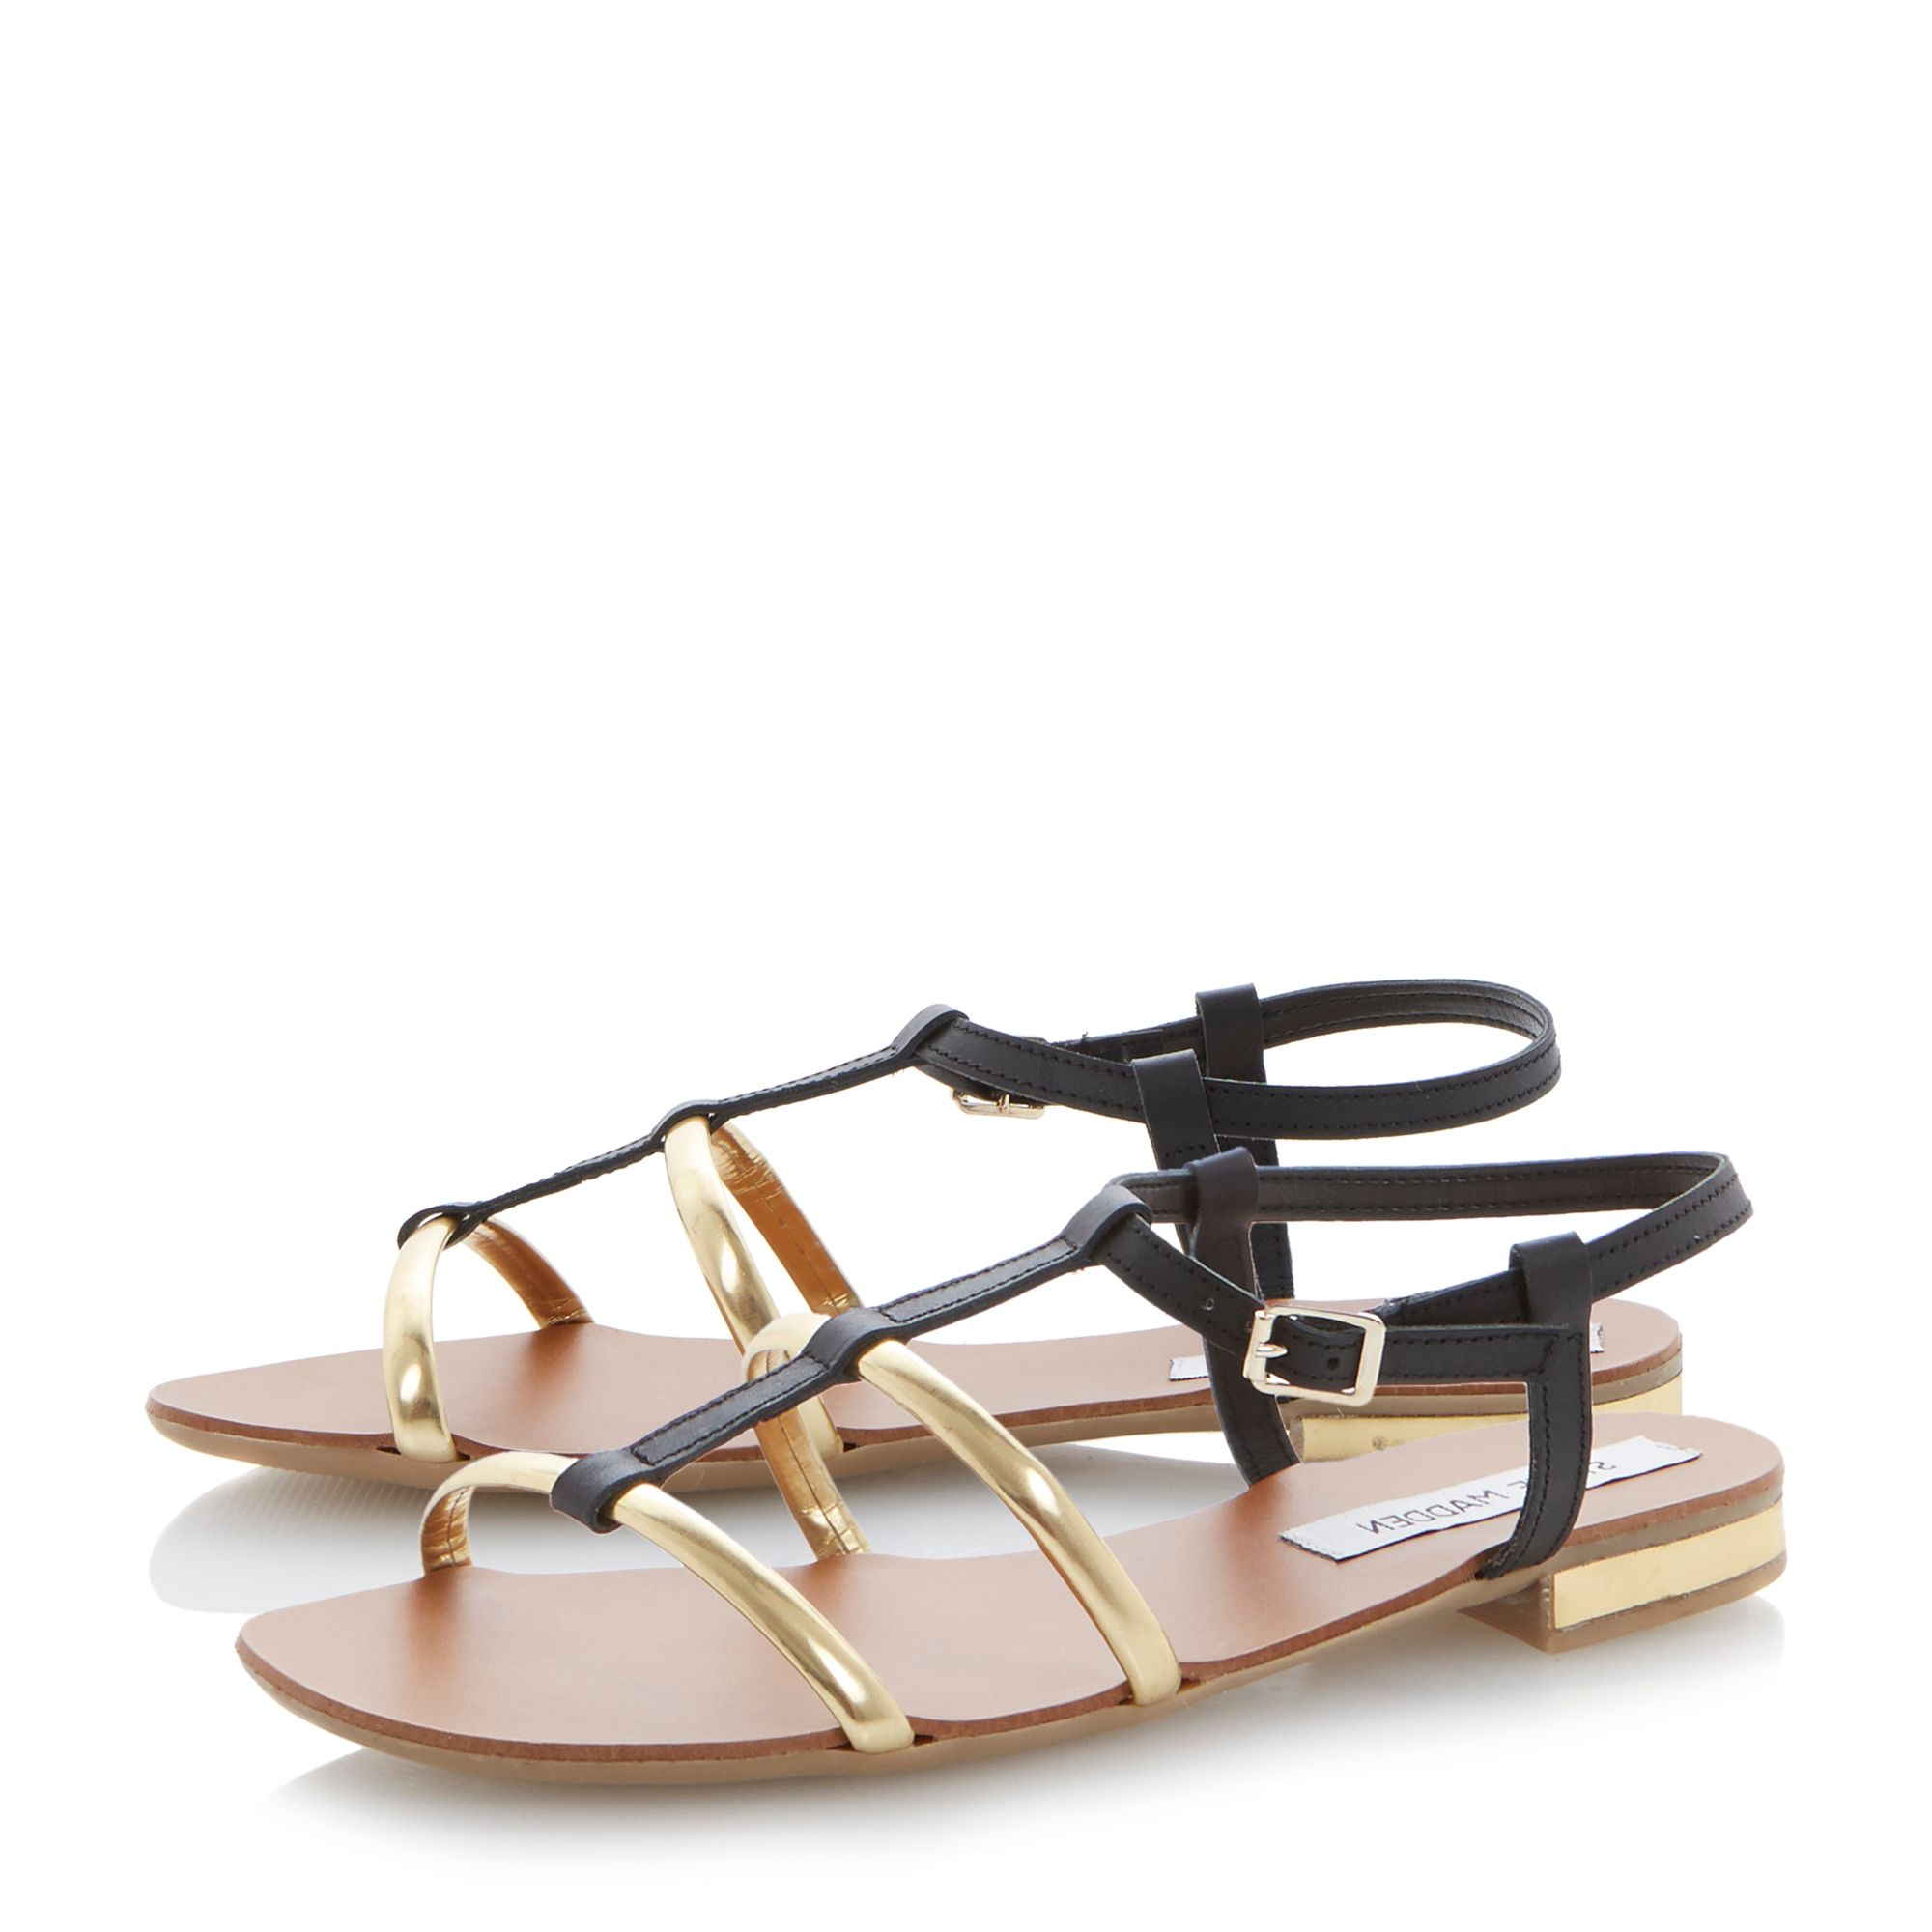 Suave leather flat buckle sandals